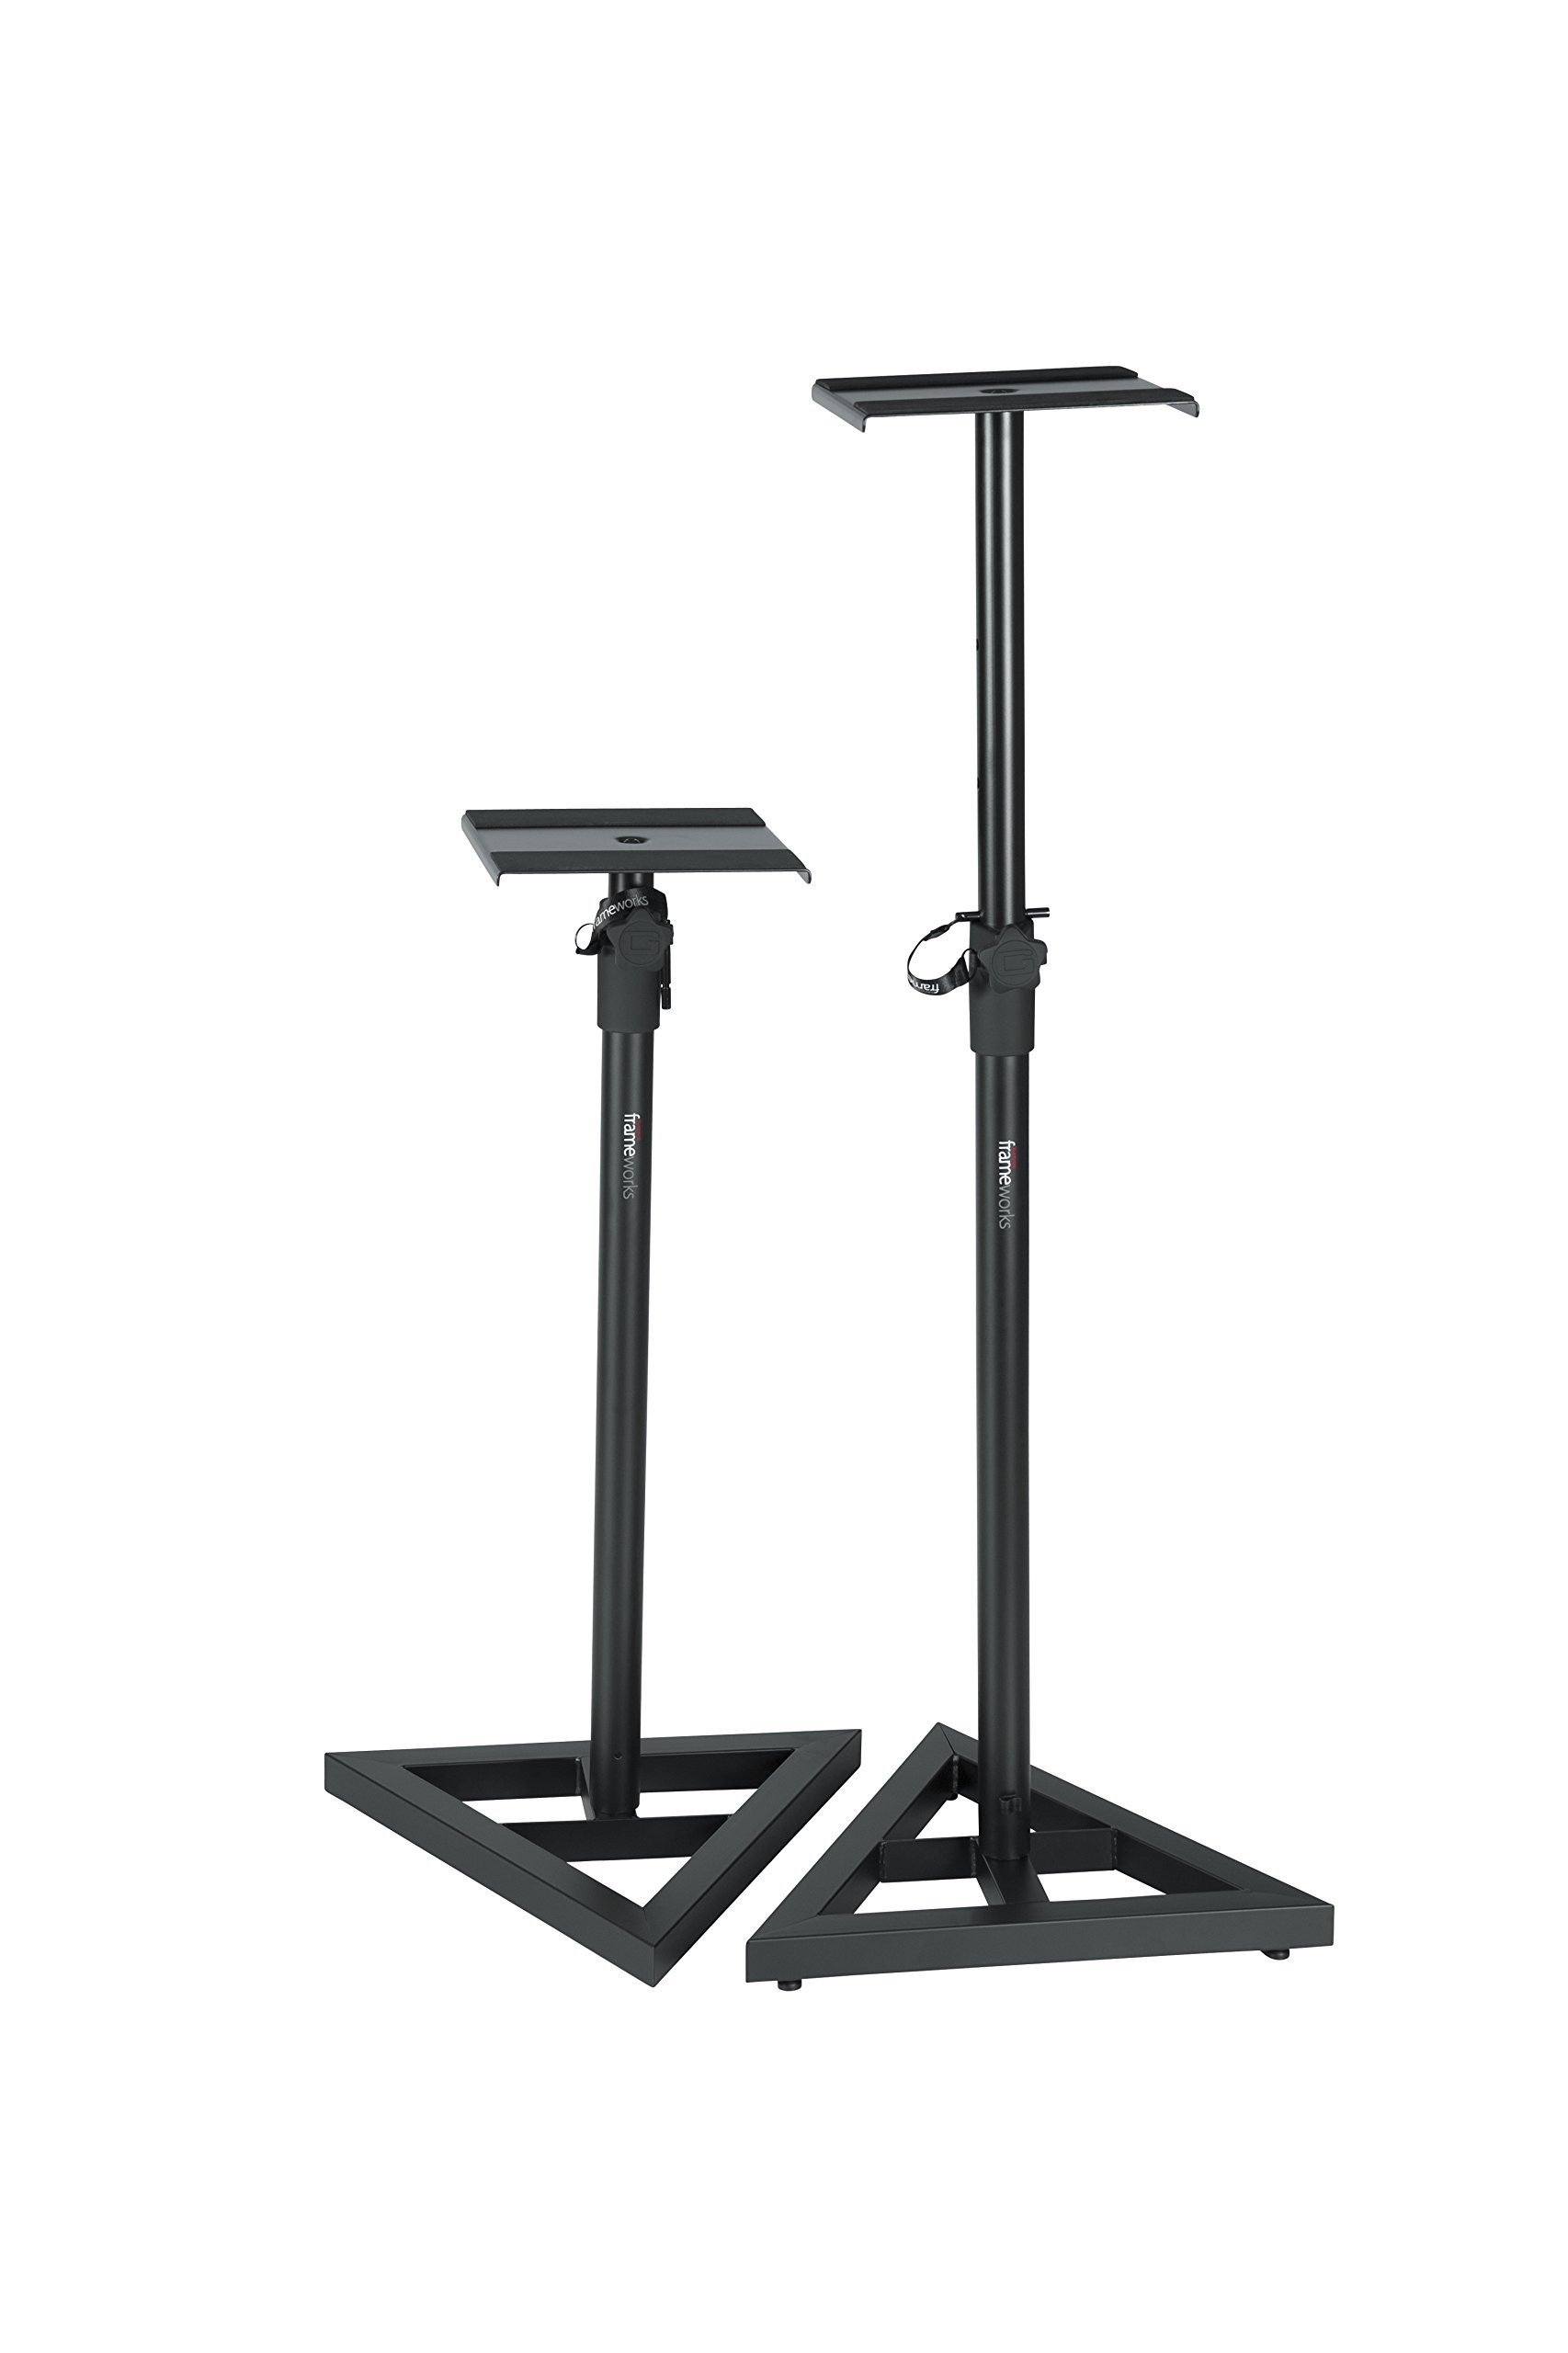 Gator Frameworks Studio Monitor Stands with Adjustable Height and Locking Saftey Pin; Pair (GFW-SPK-SM50)